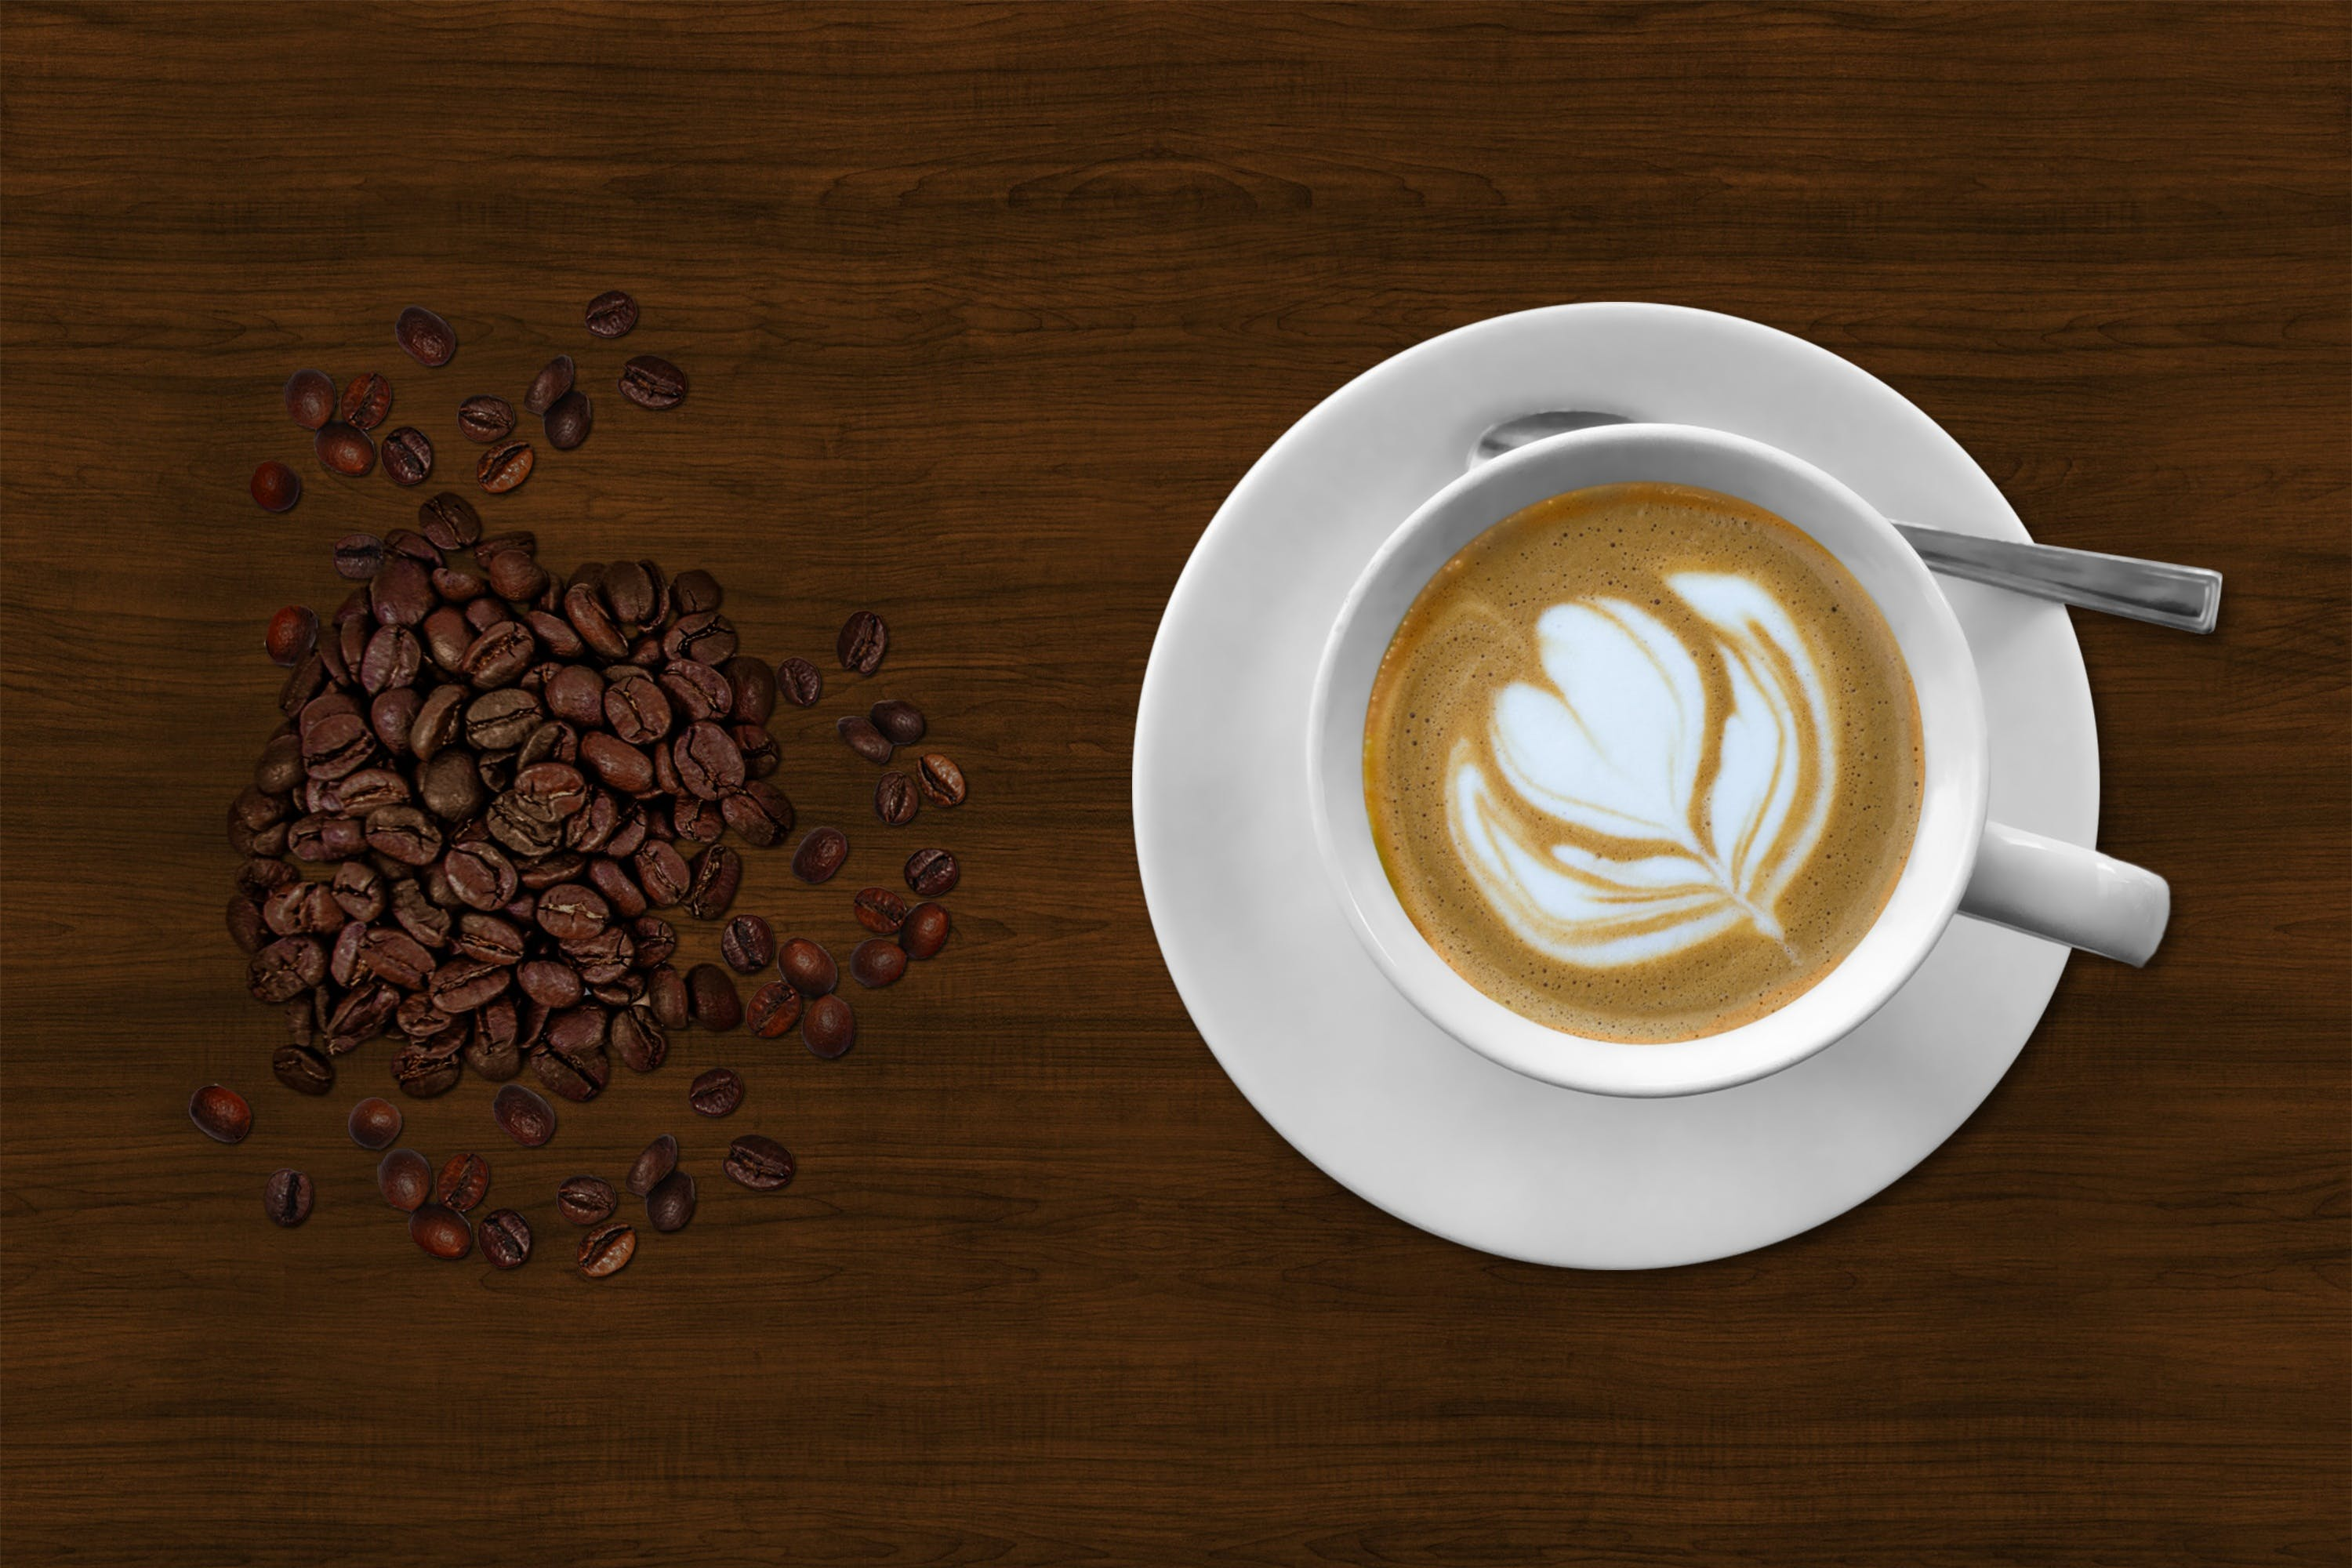 Brown and White Espresso in White Coffee Mug Beside Coffee Beans